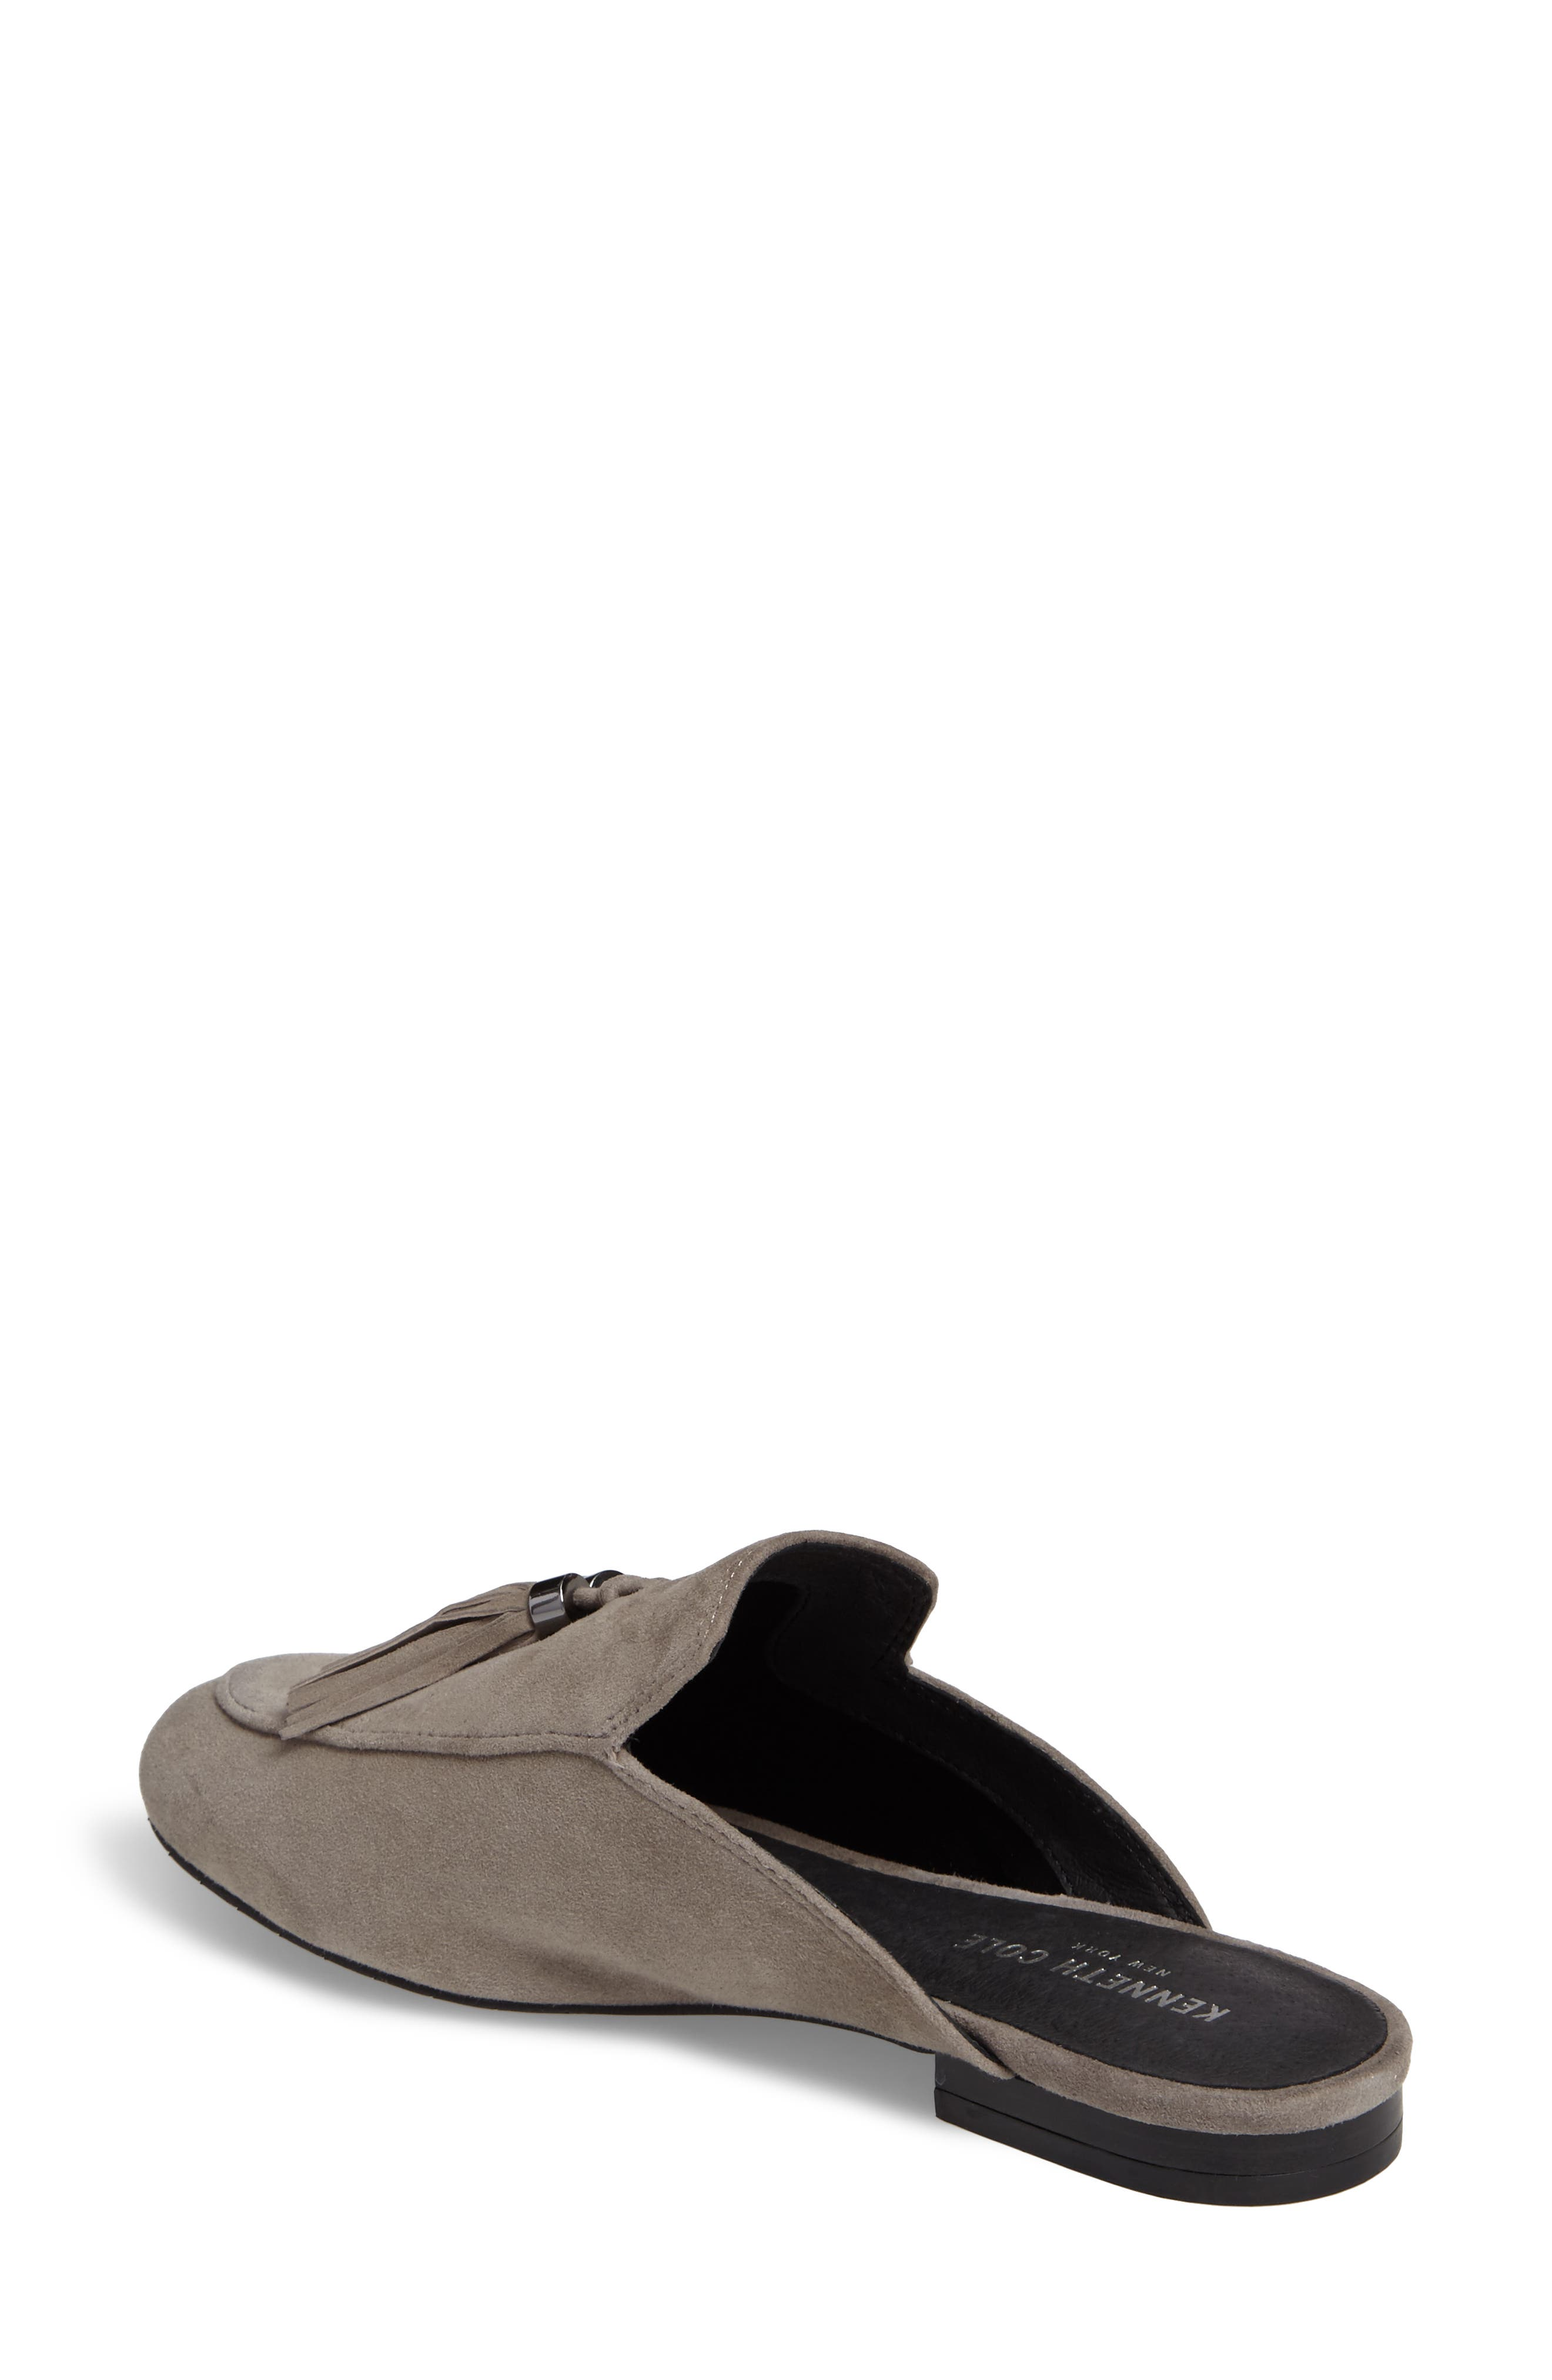 Alternate Image 2  - Kenneth Cole New York Whinnie Loafer Mule (Women)